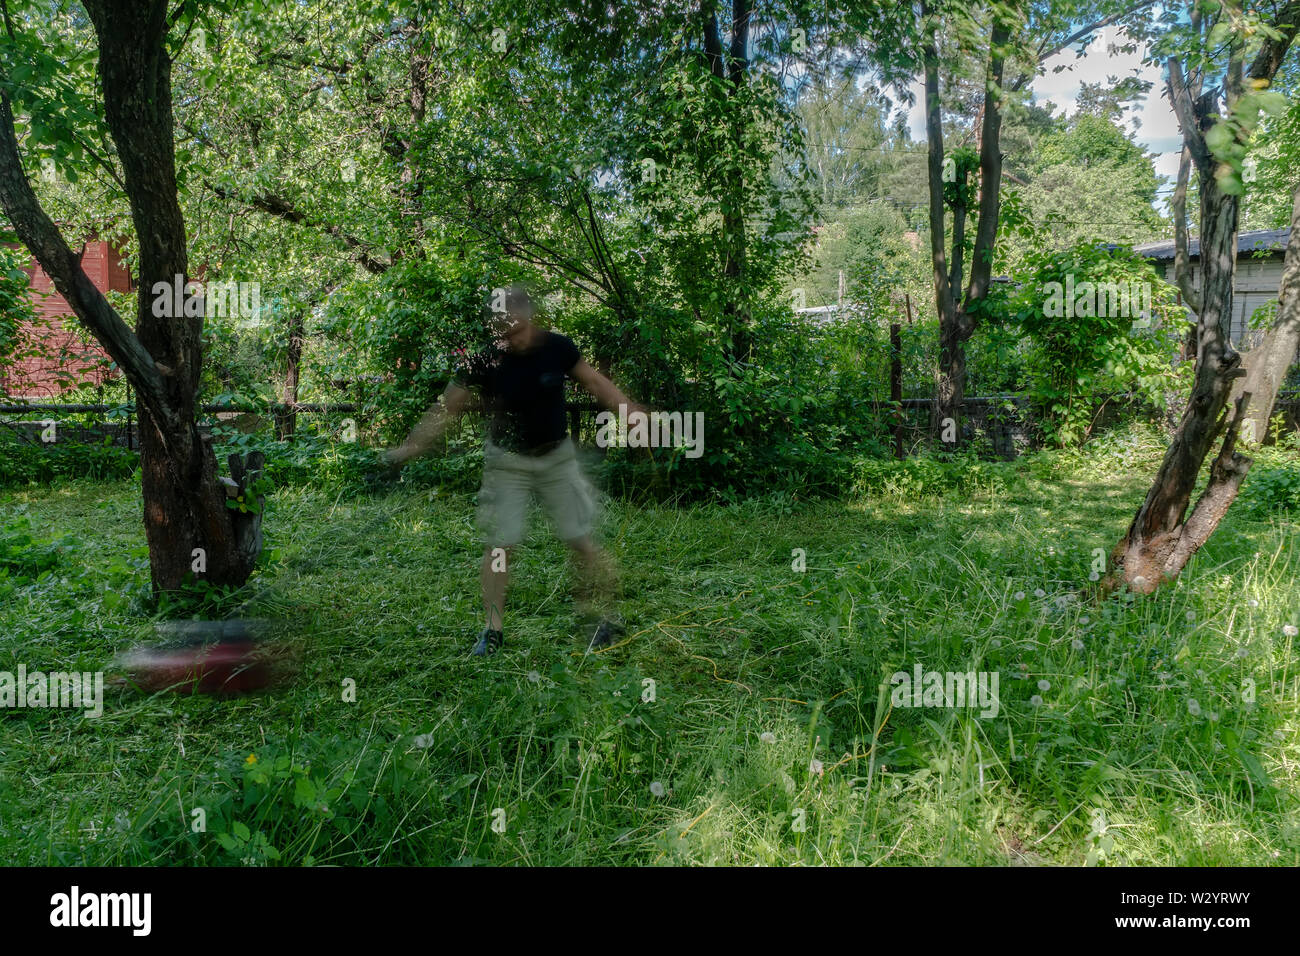 Aged Man cutting grass in the overgrown garden, - Stock Image